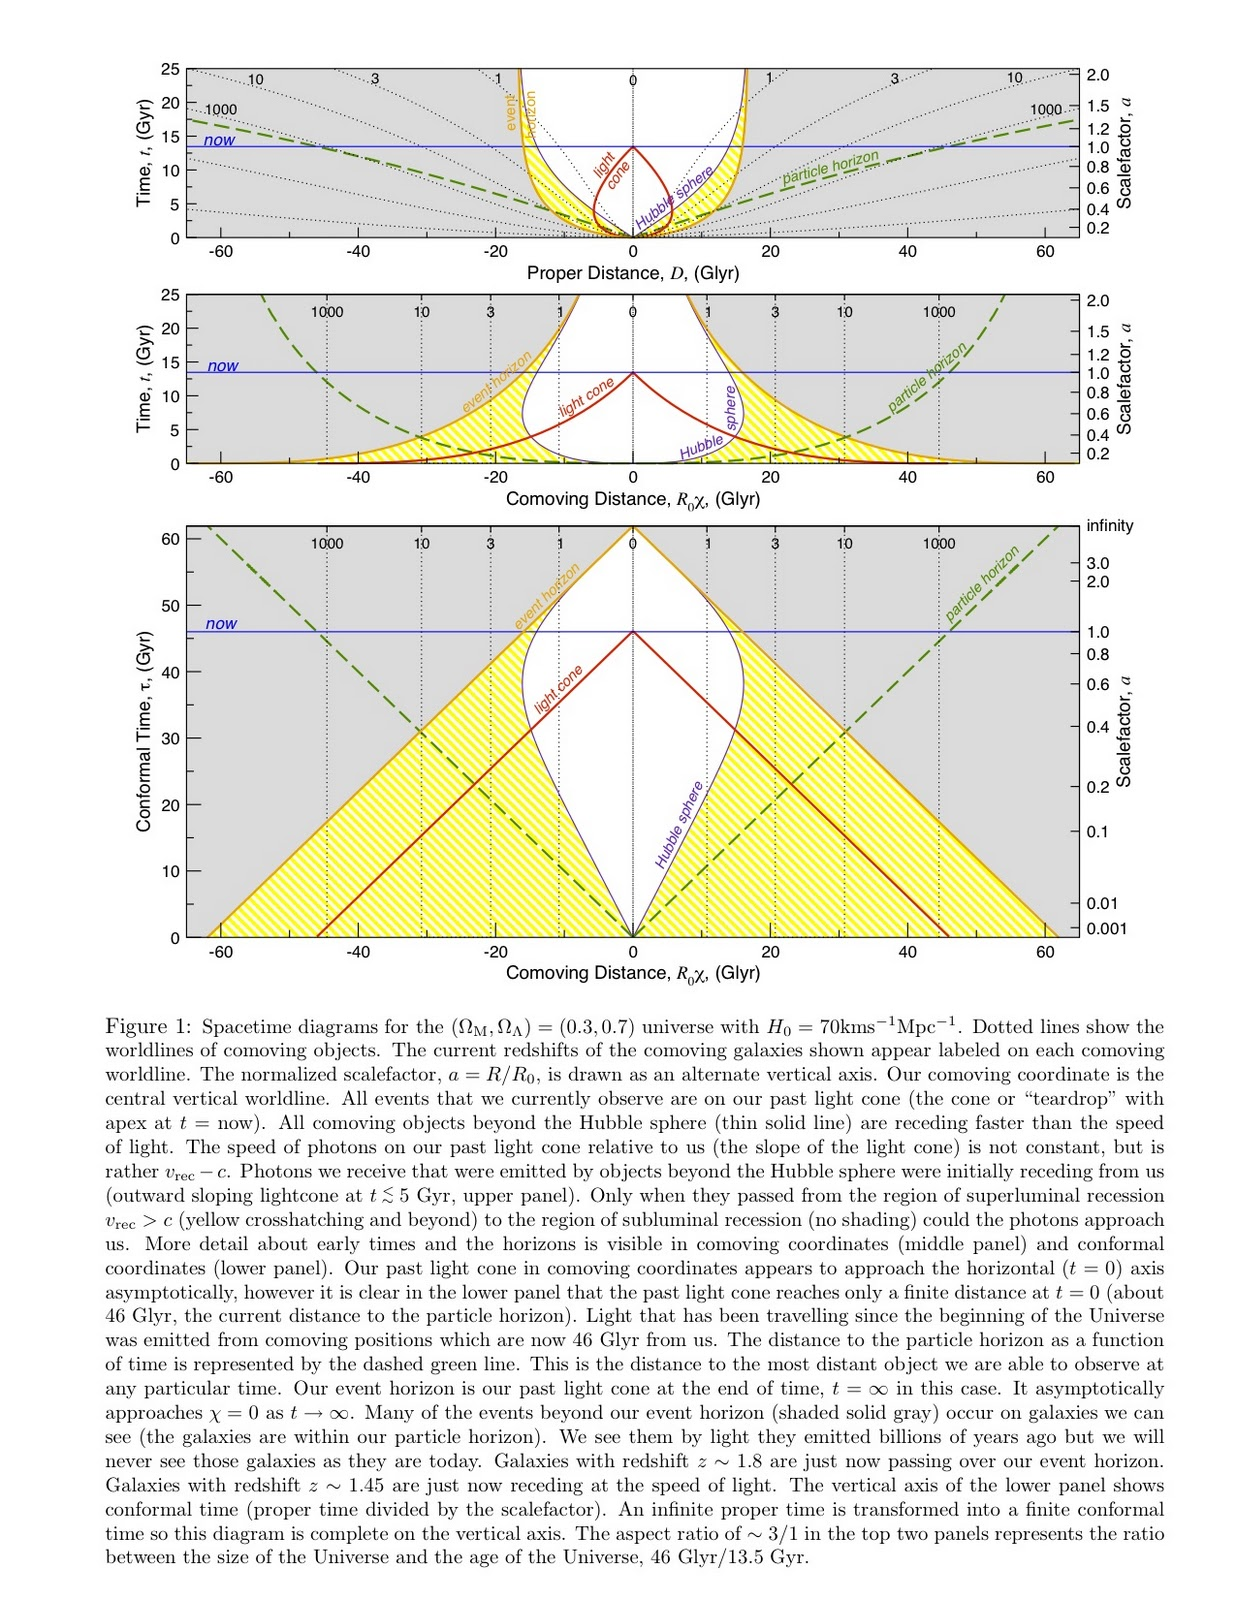 Color version of spacetime diagram from Davis & Lineweaver 2003